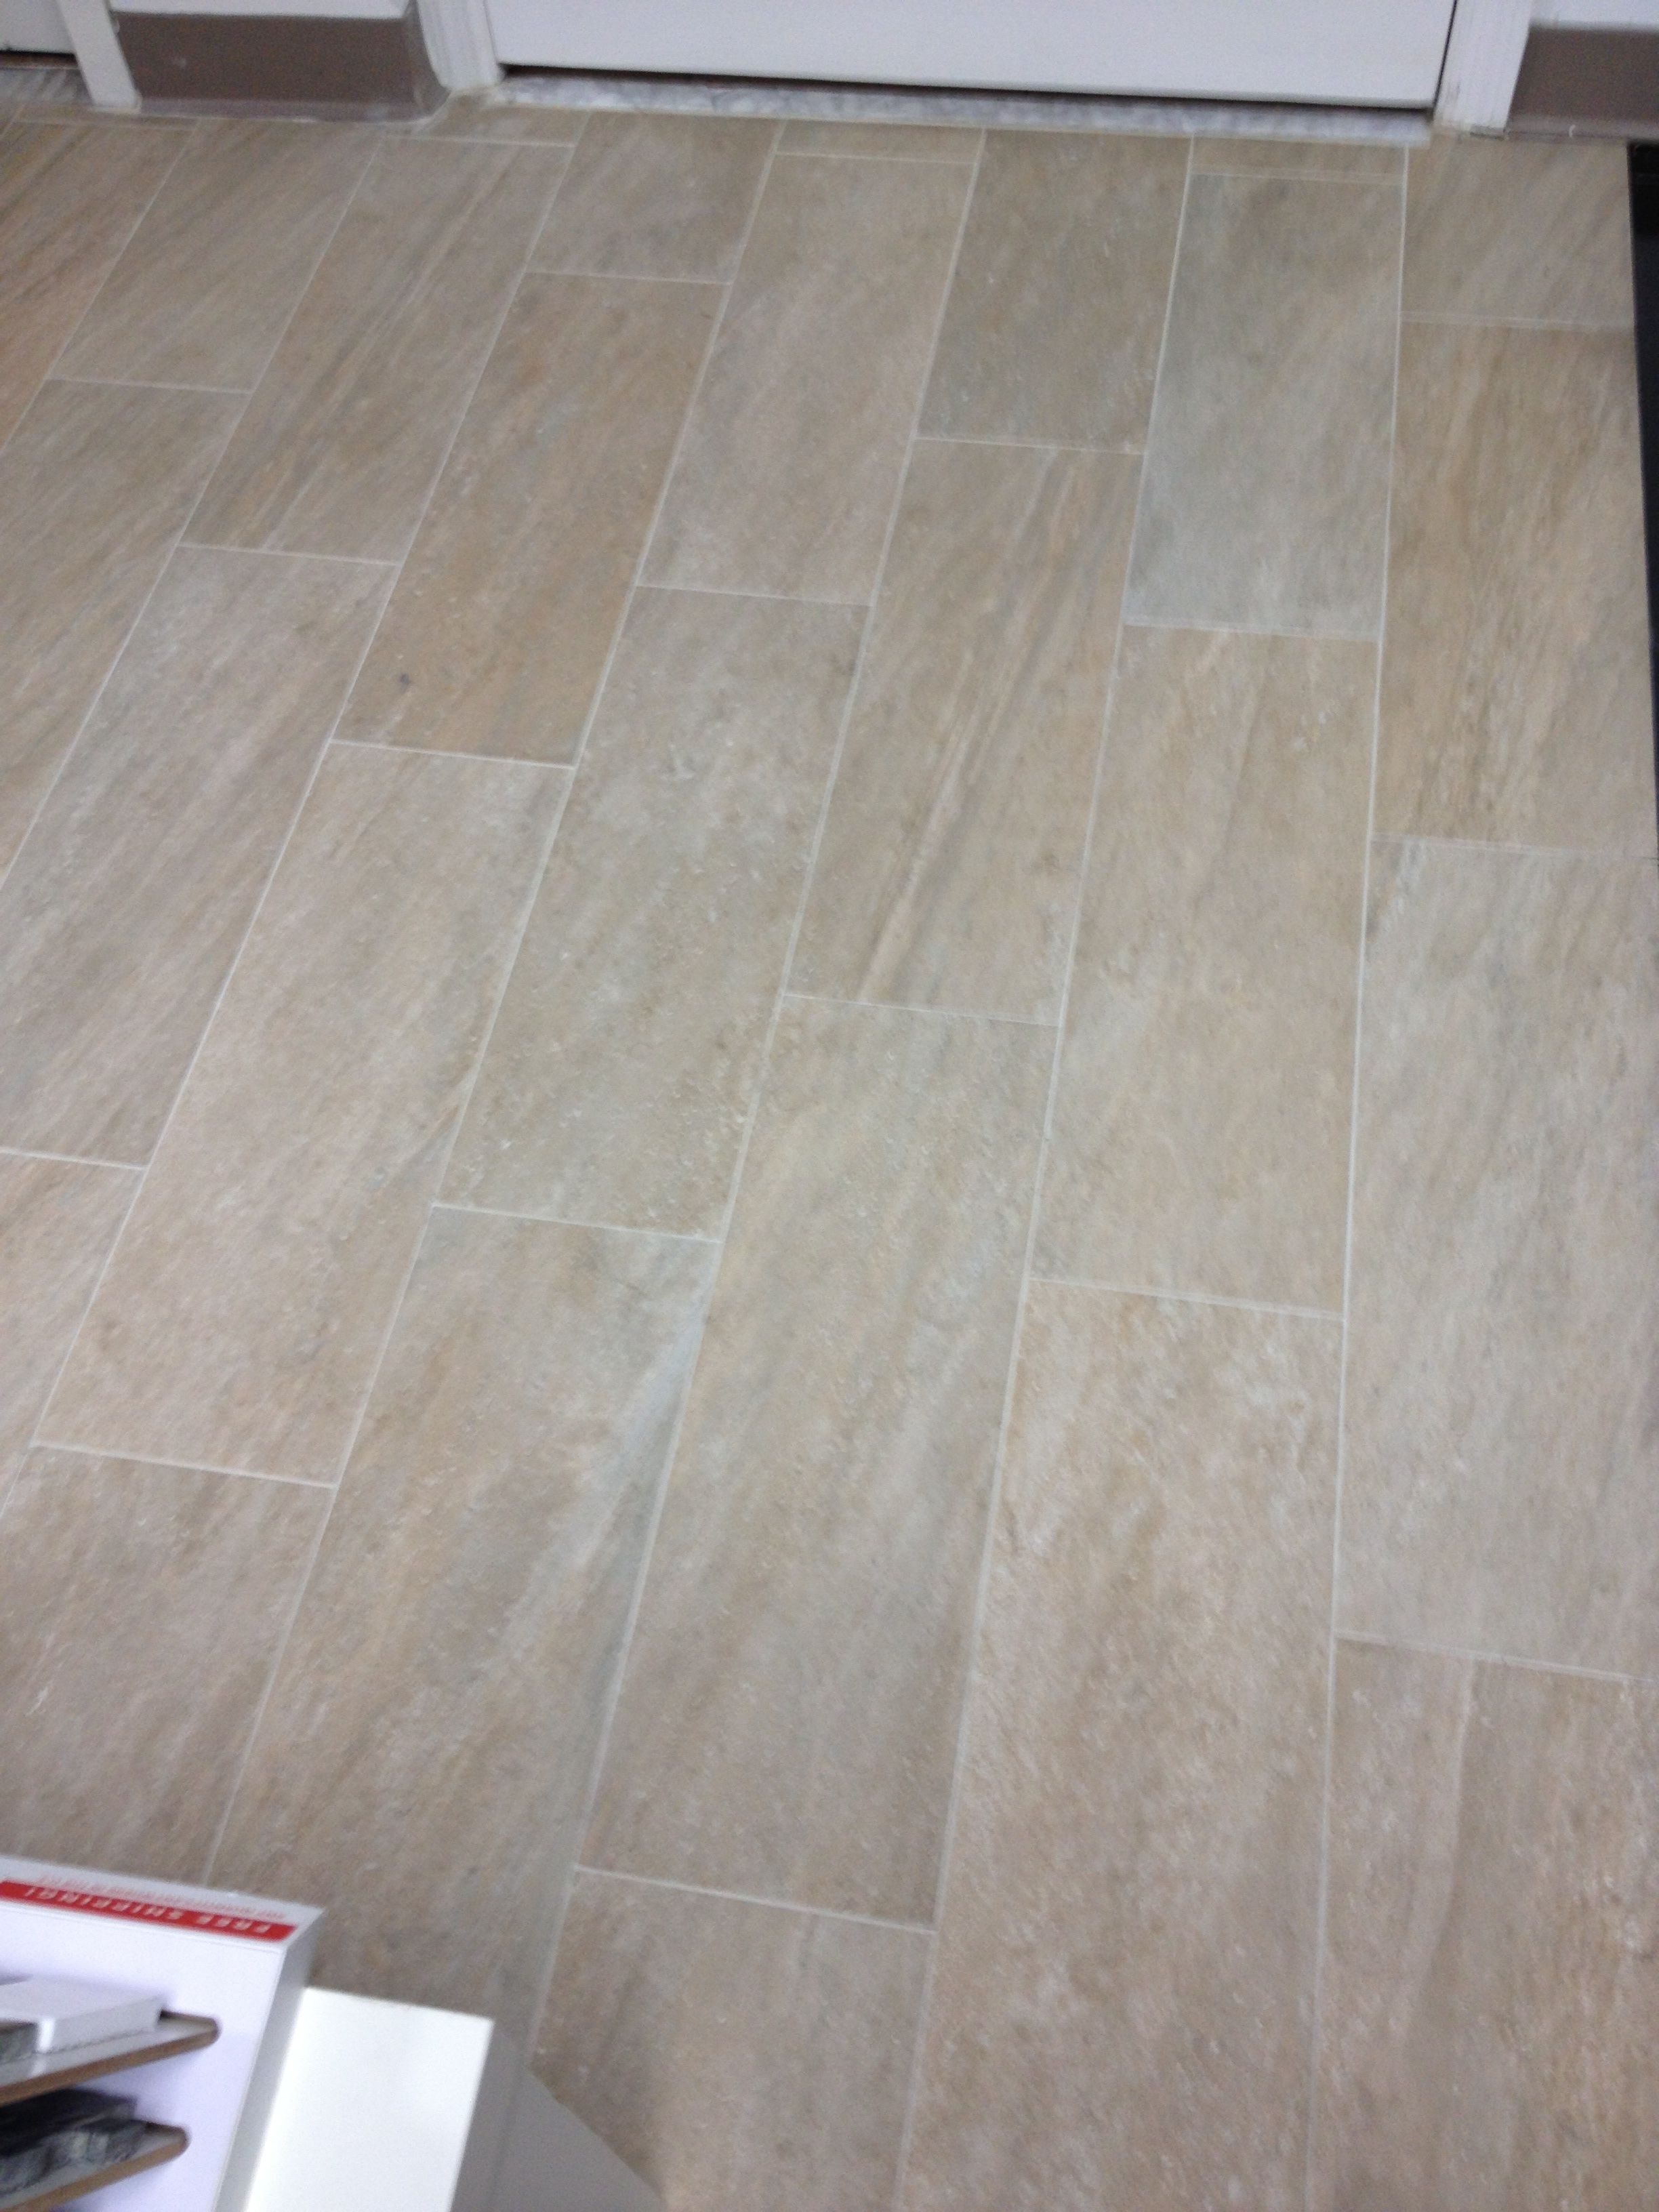 floor tile with minimal grout lines